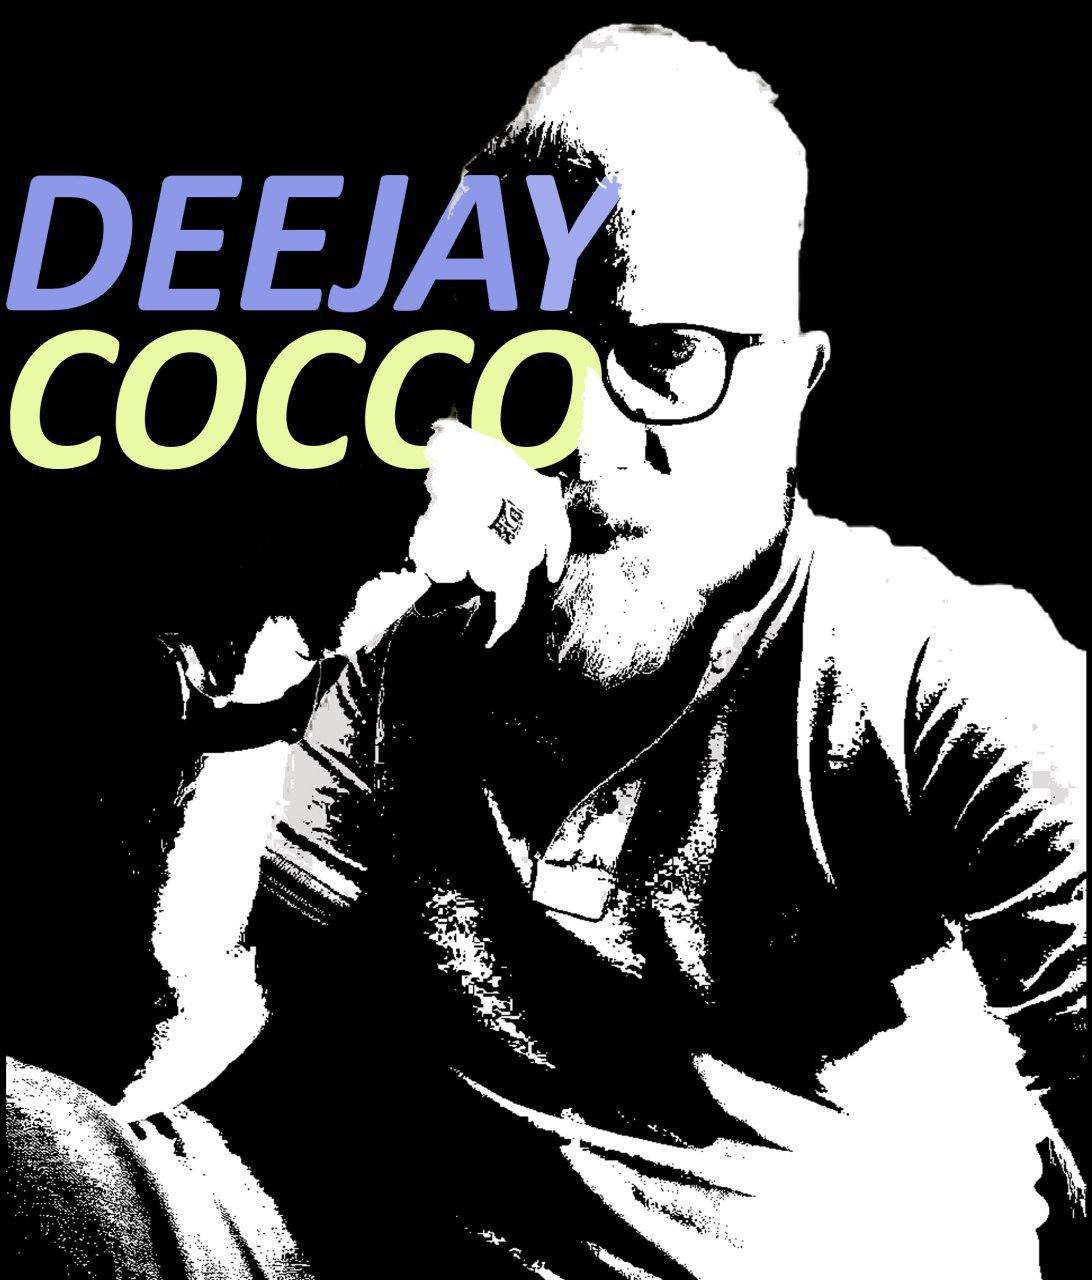 Deejay Cocco